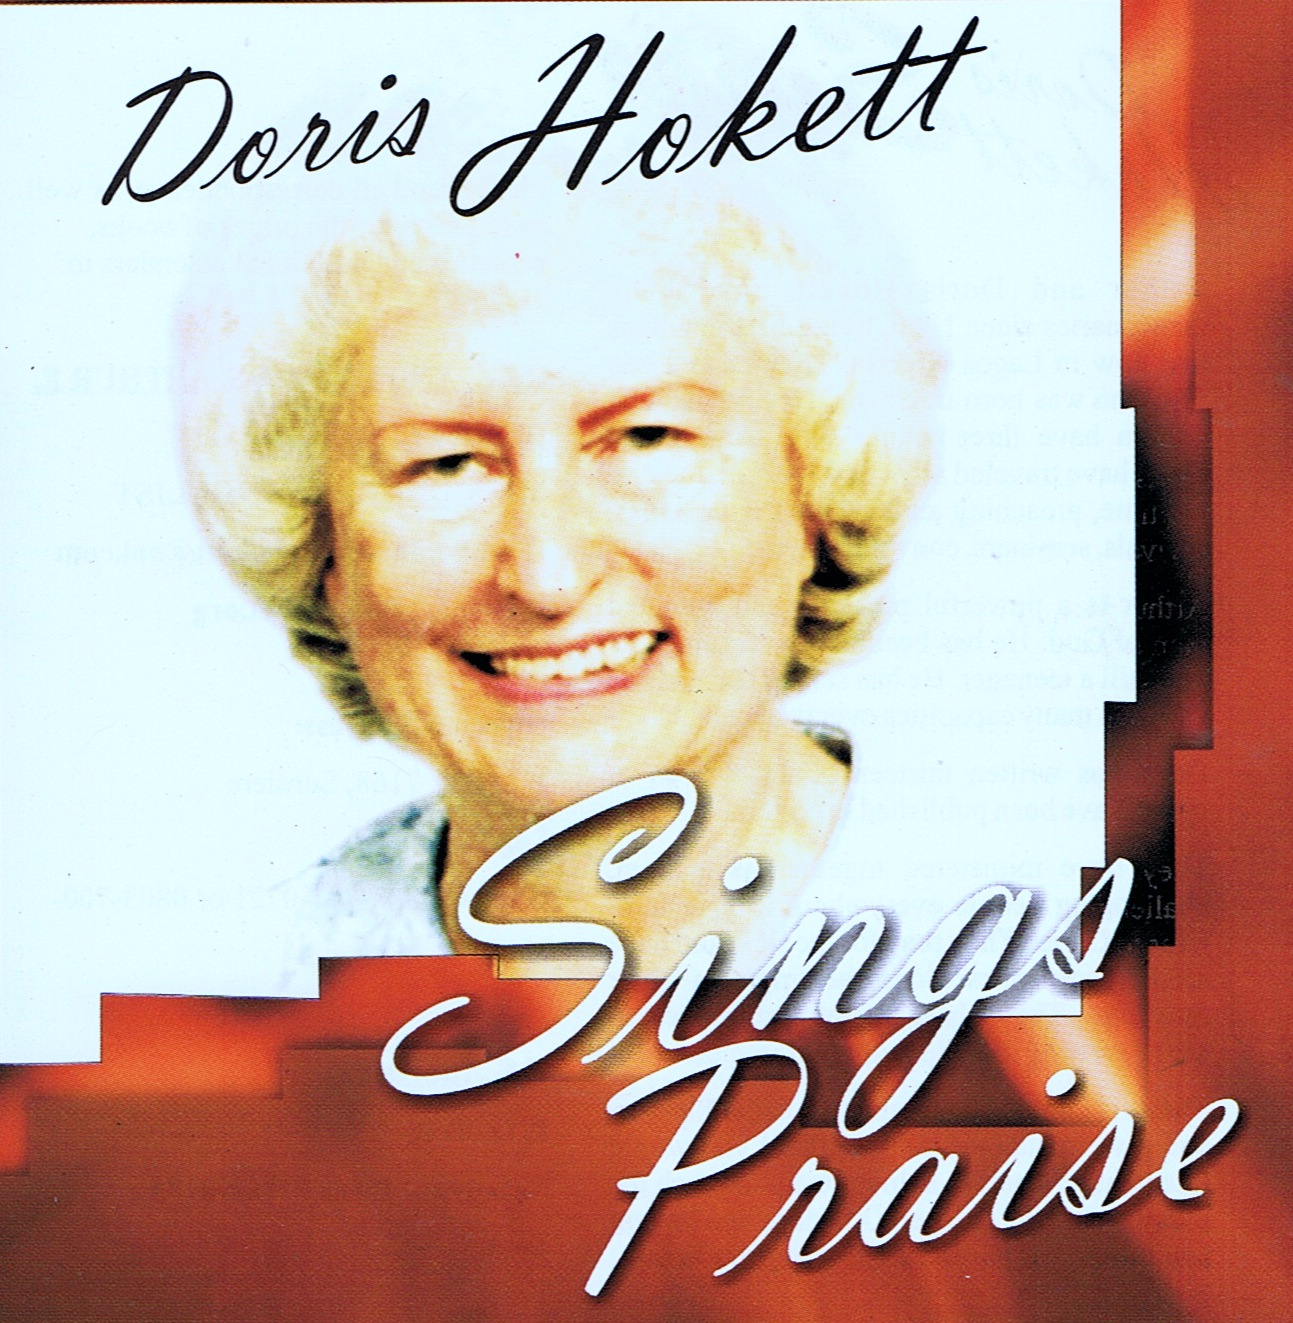 Doris Hokett CD